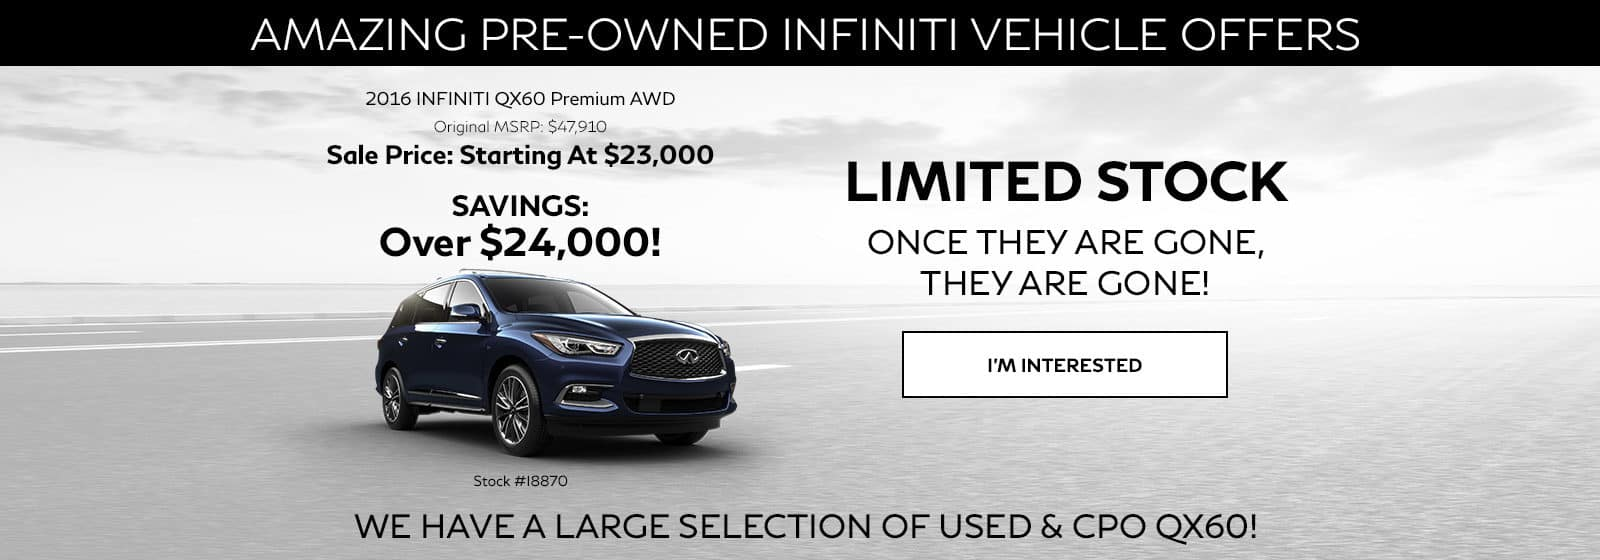 Used QX60 Special